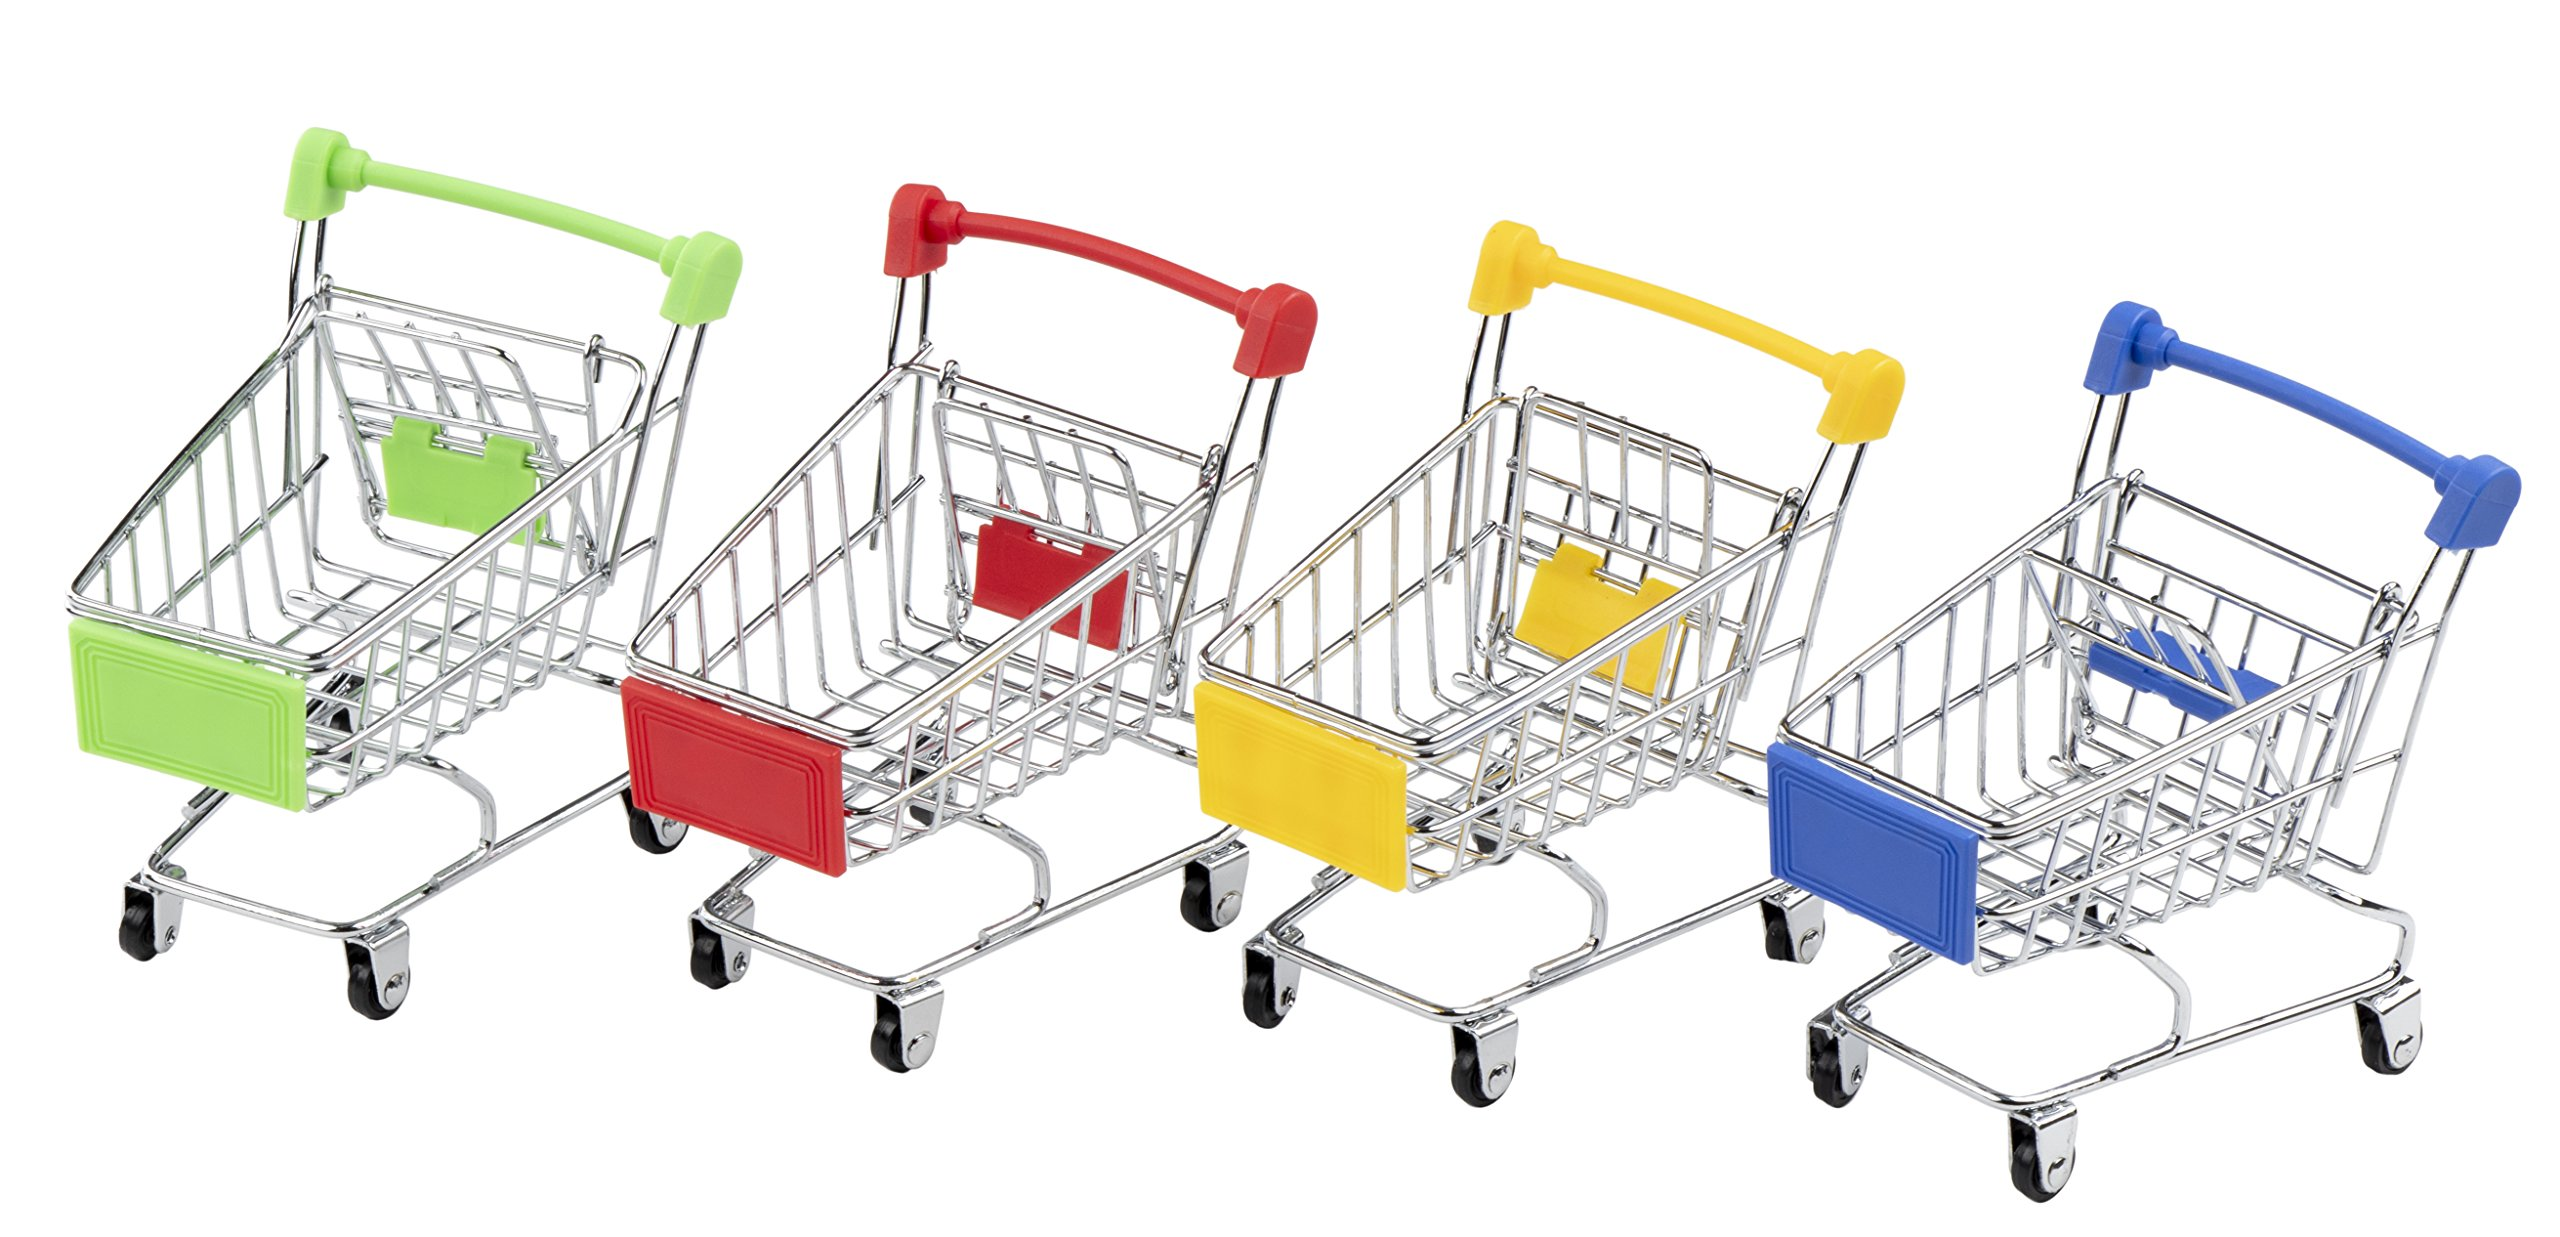 Juvale Mini Shopping Cart - 4-Pack Desk Organizers, Pen Pencil Holder Storage Toy for Stationery Supplies, 4 Colors, 3.25 x 4.375 x 4.75 Inches